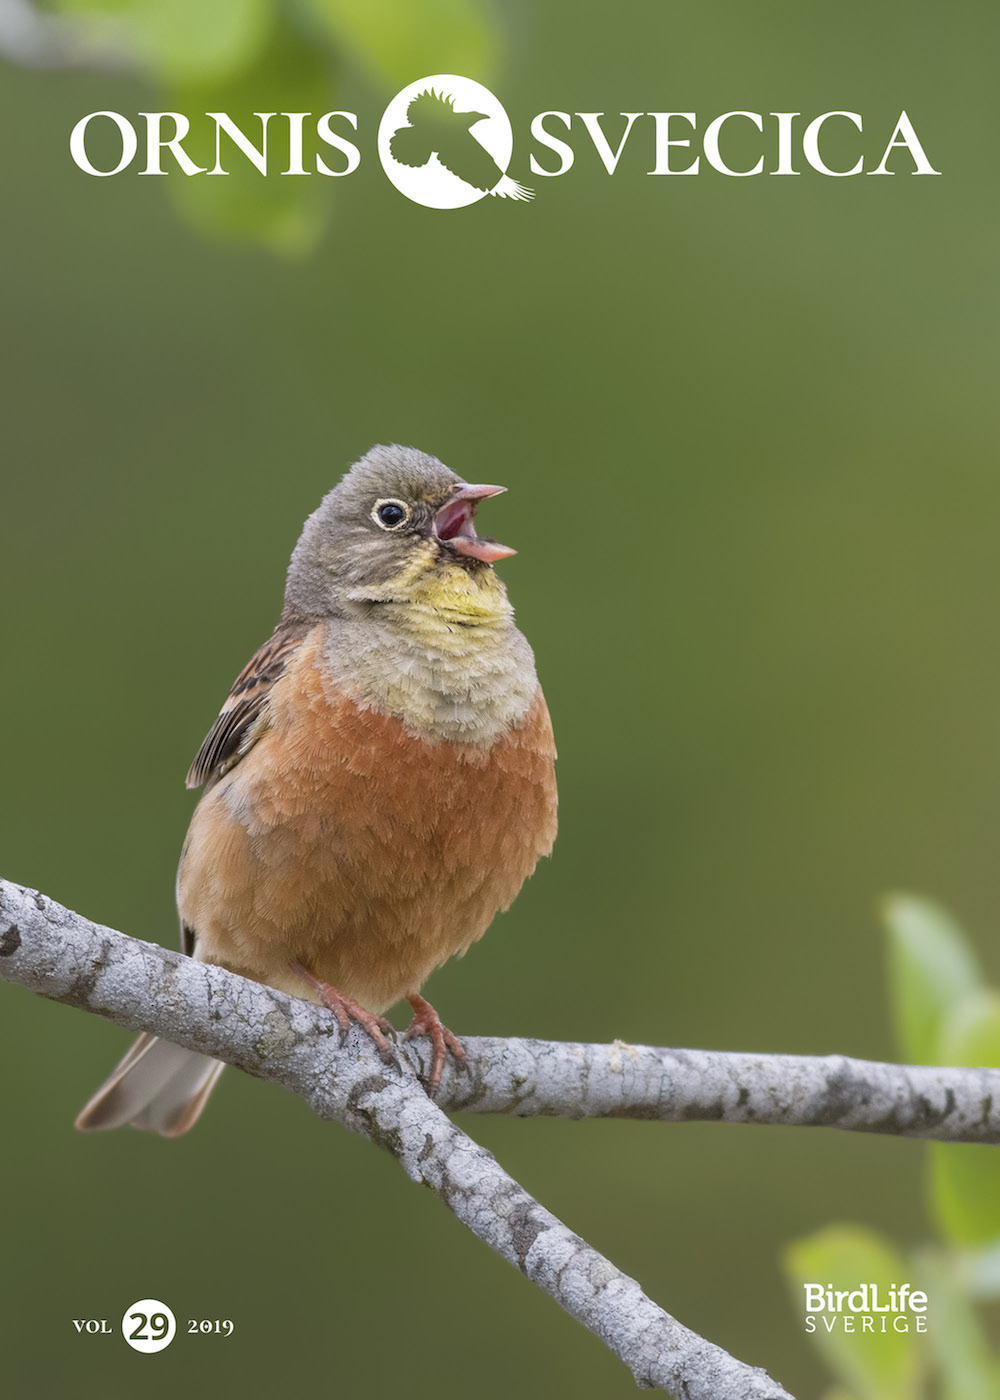 The cover of Ornis Svecica, volume 29, 2019, features an Ortolan Bunting photographed by Ivan Sjögren.